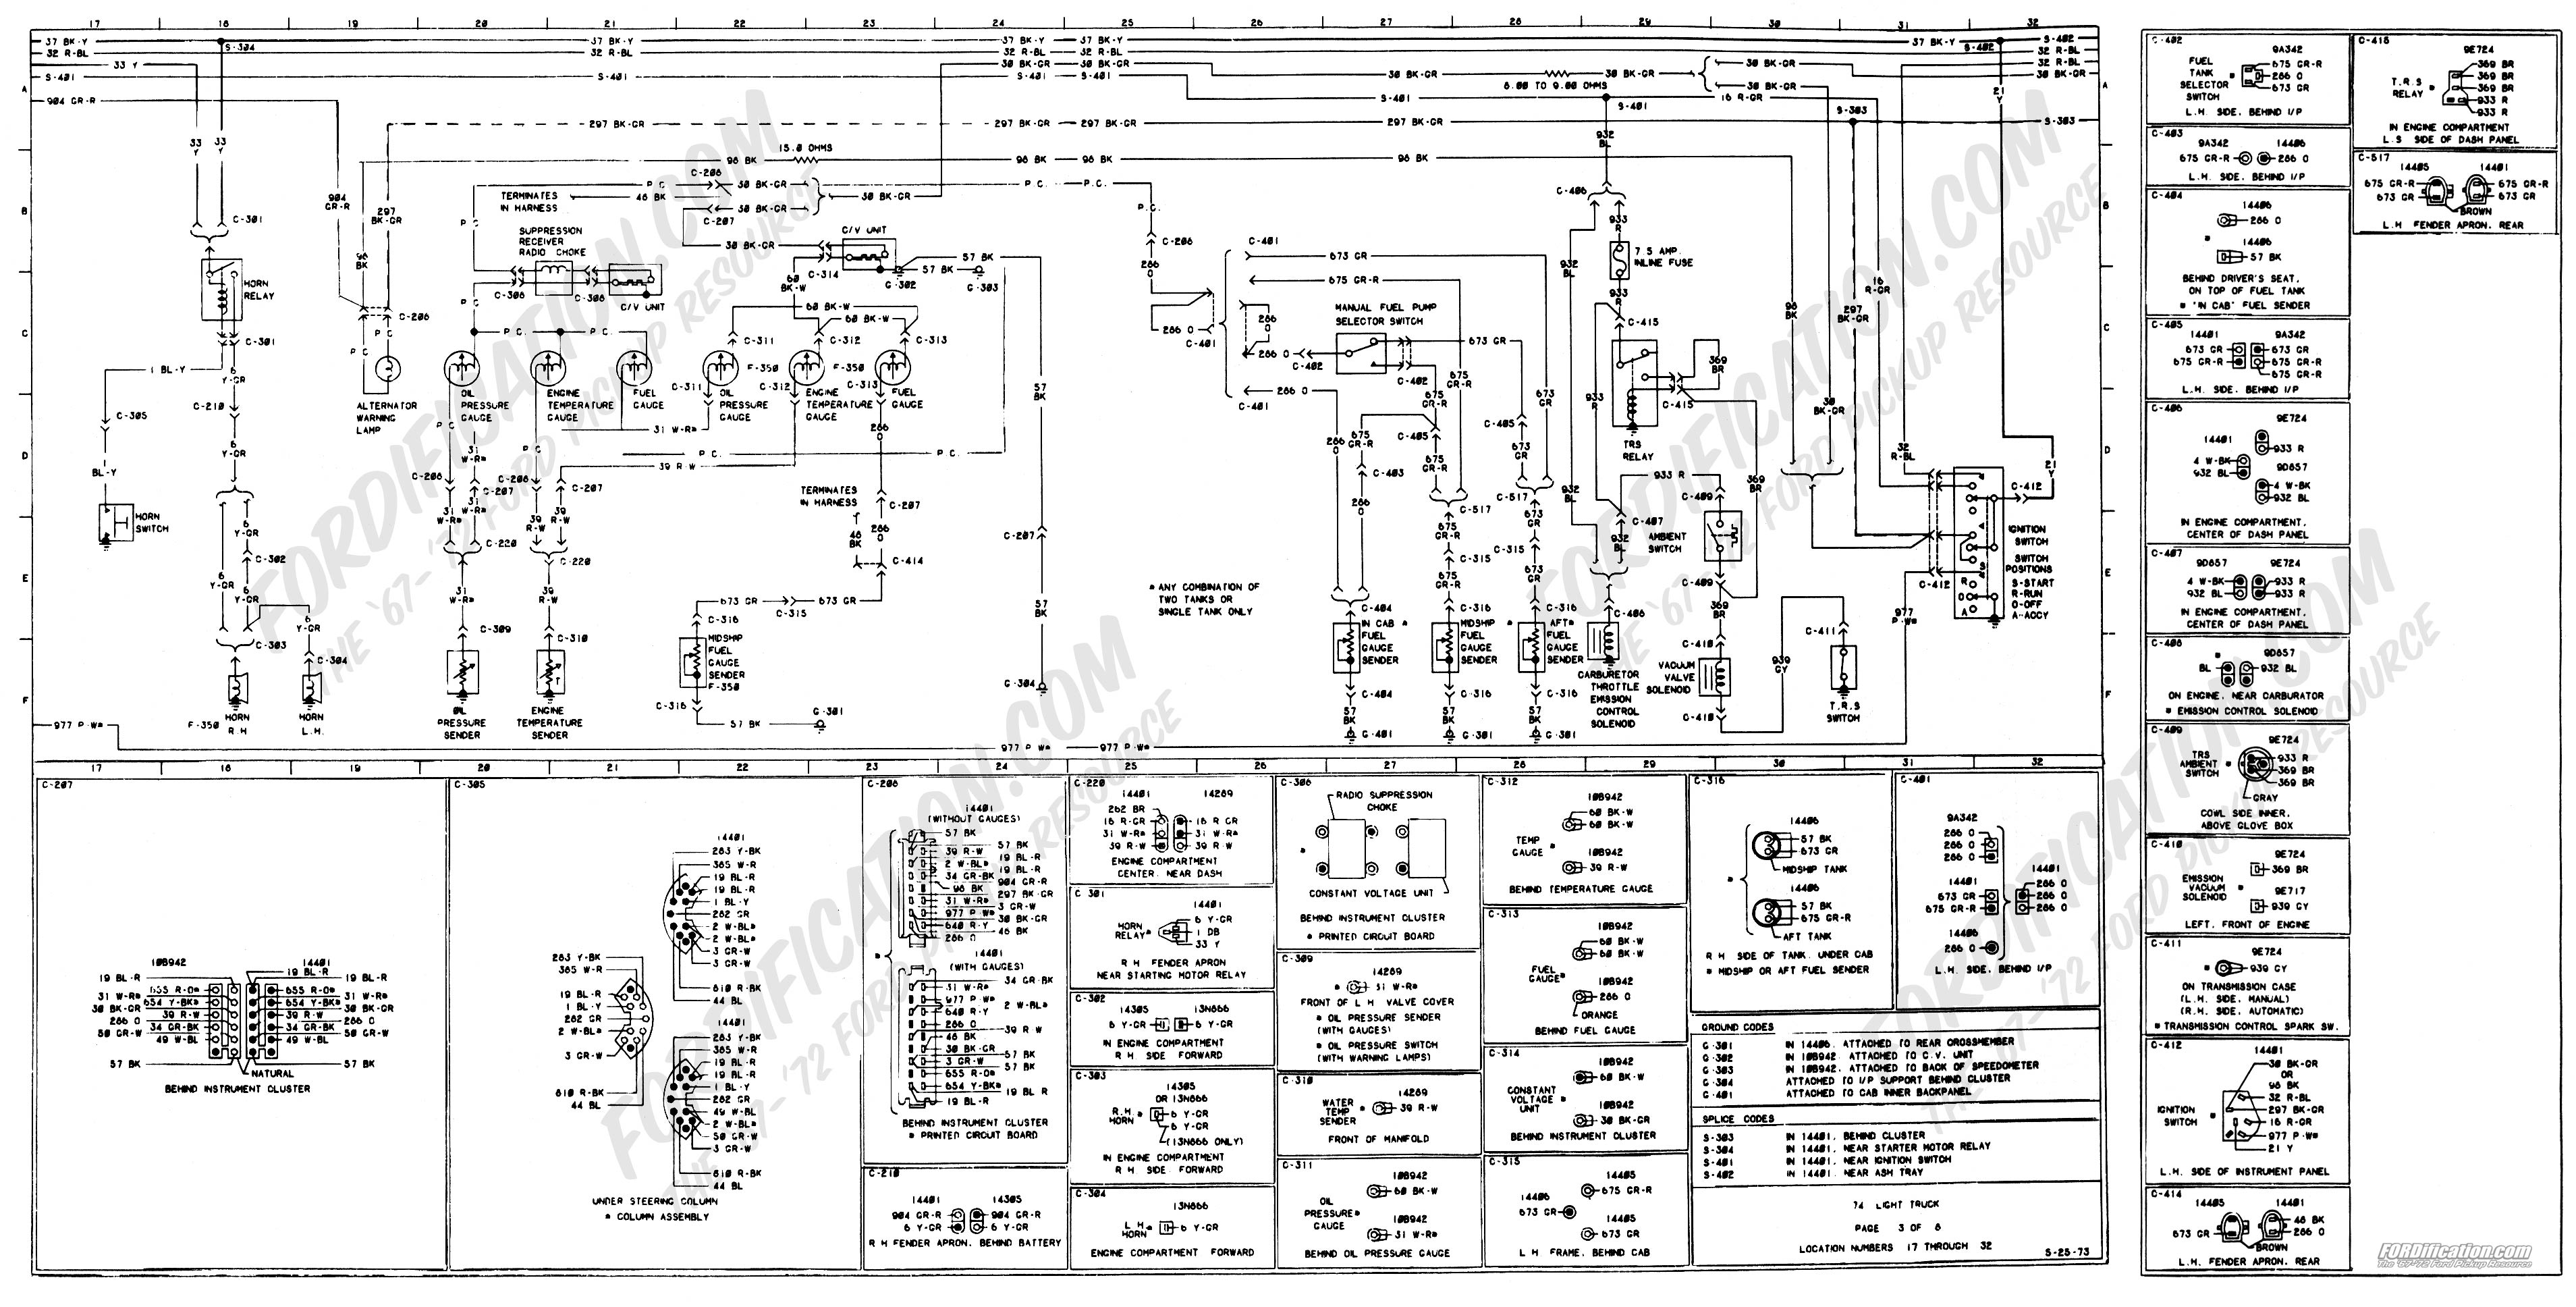 2004 ford f350 wiring diagram 2004 discover your wiring diagram ford 29 v6 wiring diagram ford wiring diagrams